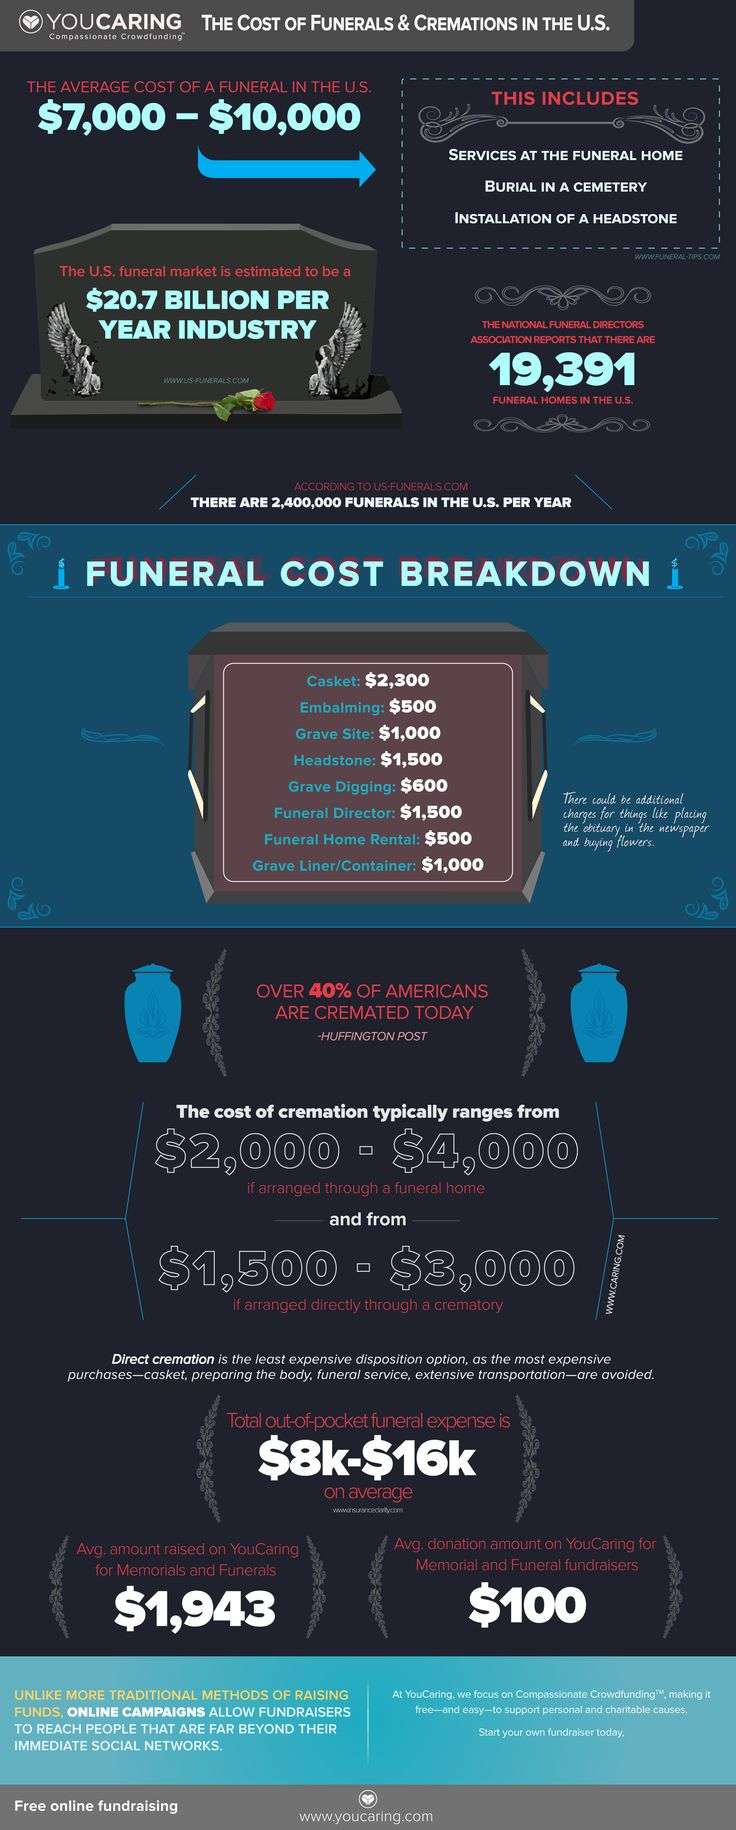 Infographic: The Cost of Funerals and Cremations in the U.S.   With the average funeral costing between $7K and $10K, it's no wonder a growing number of people are resorting to crowdfunding to help offset costs. Learn more about how to alleviate the burden of paying for a funeral/cremation with this #infographic via Compassionate Crowdfunding Blog